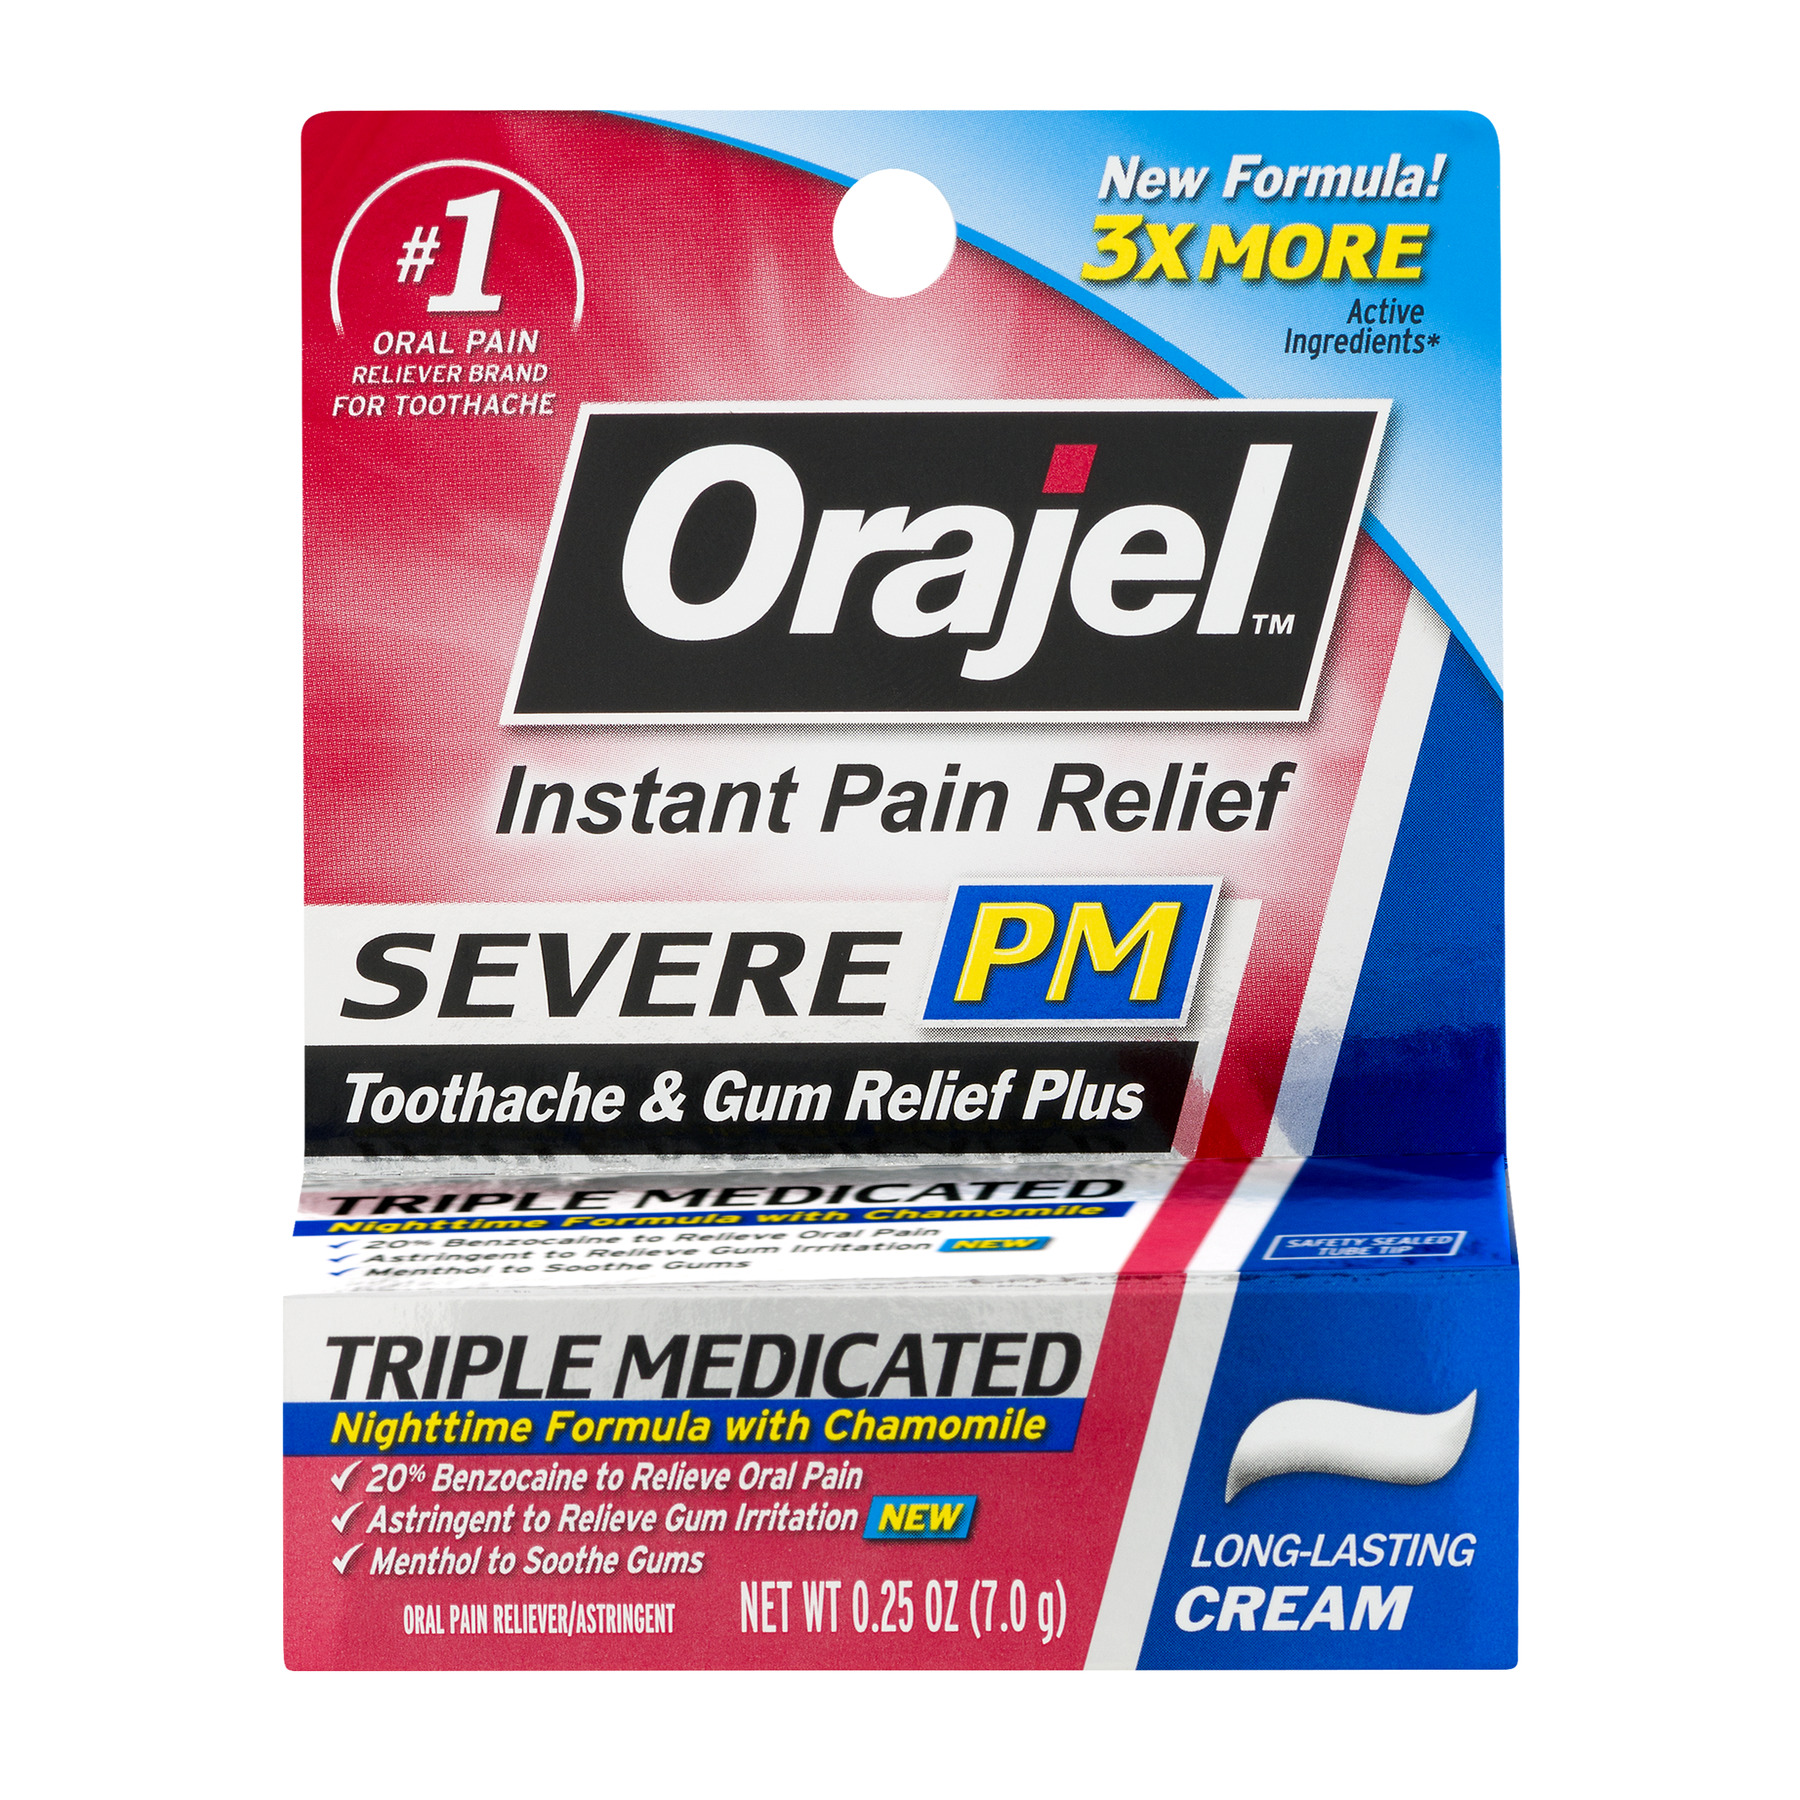 Orajel™ Oral Pain Reliever Triple Medicated for Severe PM Toothache & Gum Relief Plus Cream .25 oz. Pack